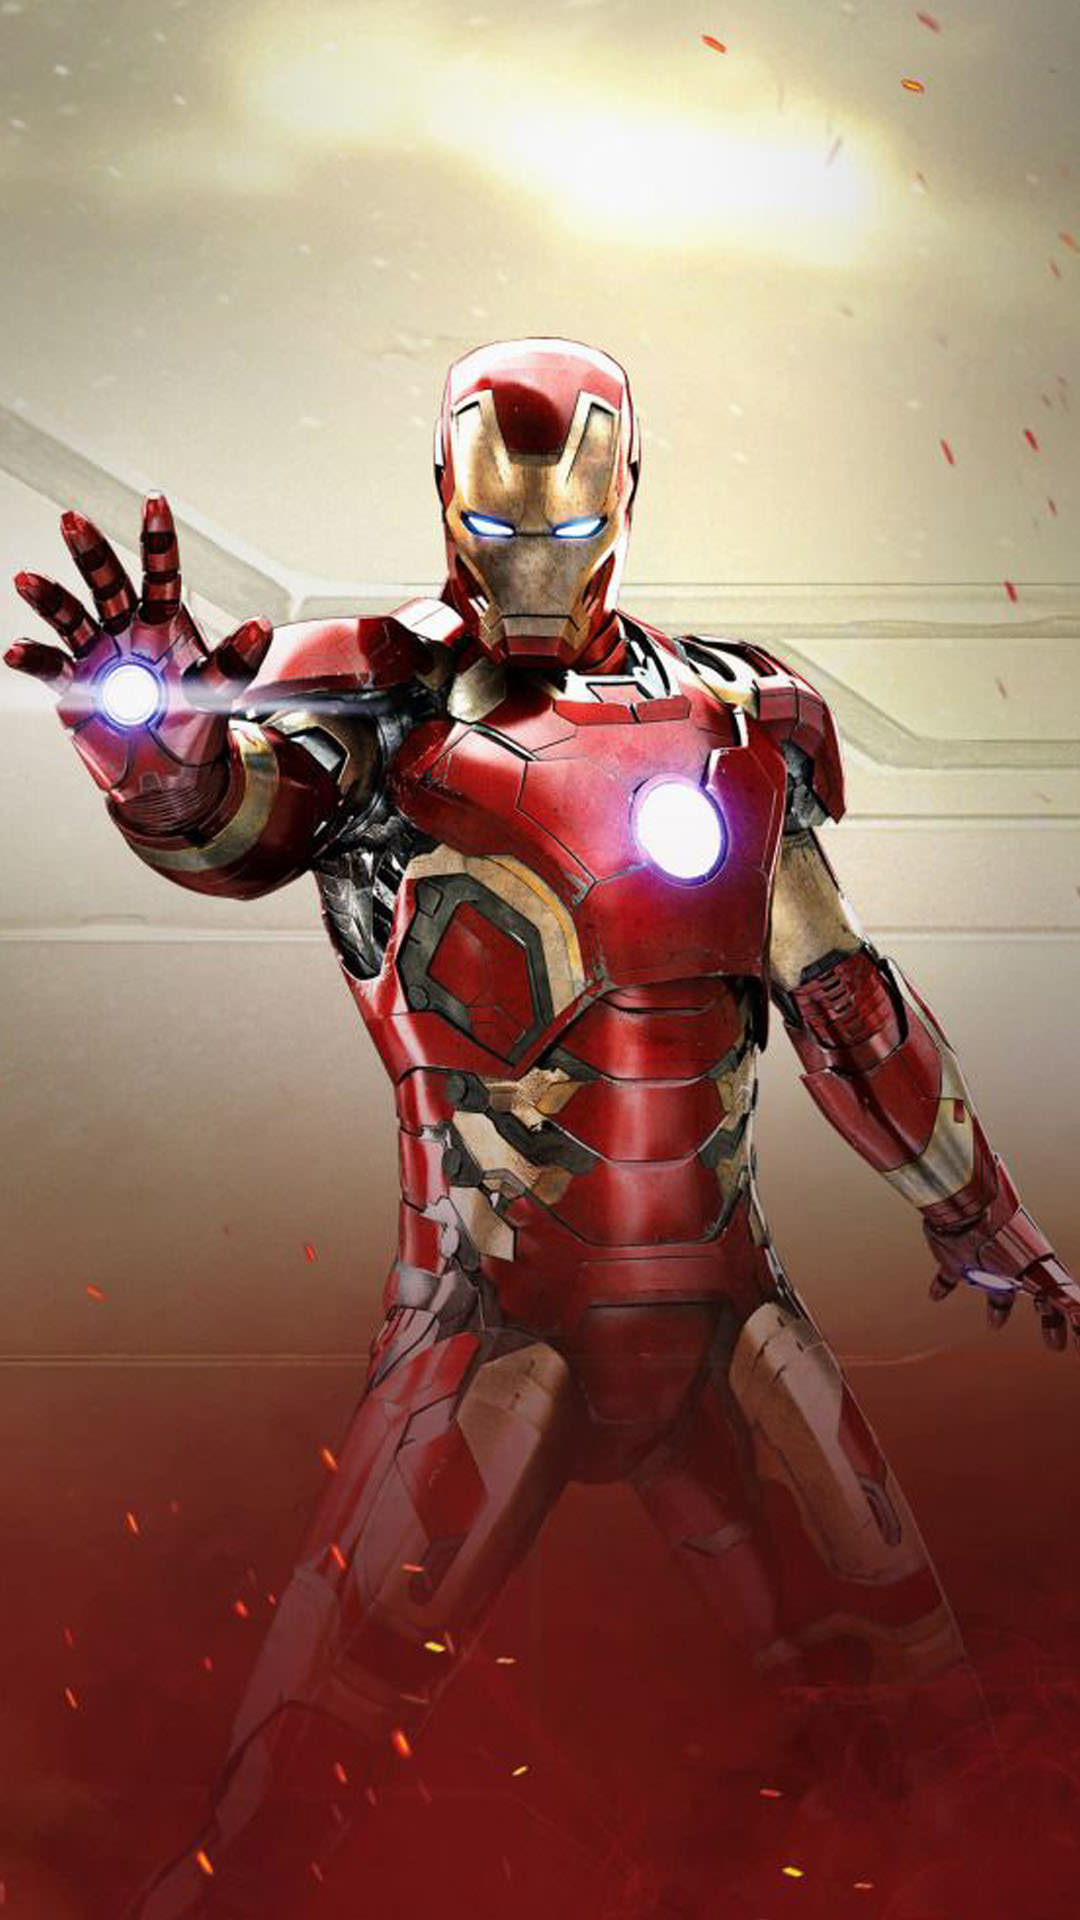 Iron Man Wallpaper iPhone (93+ images)